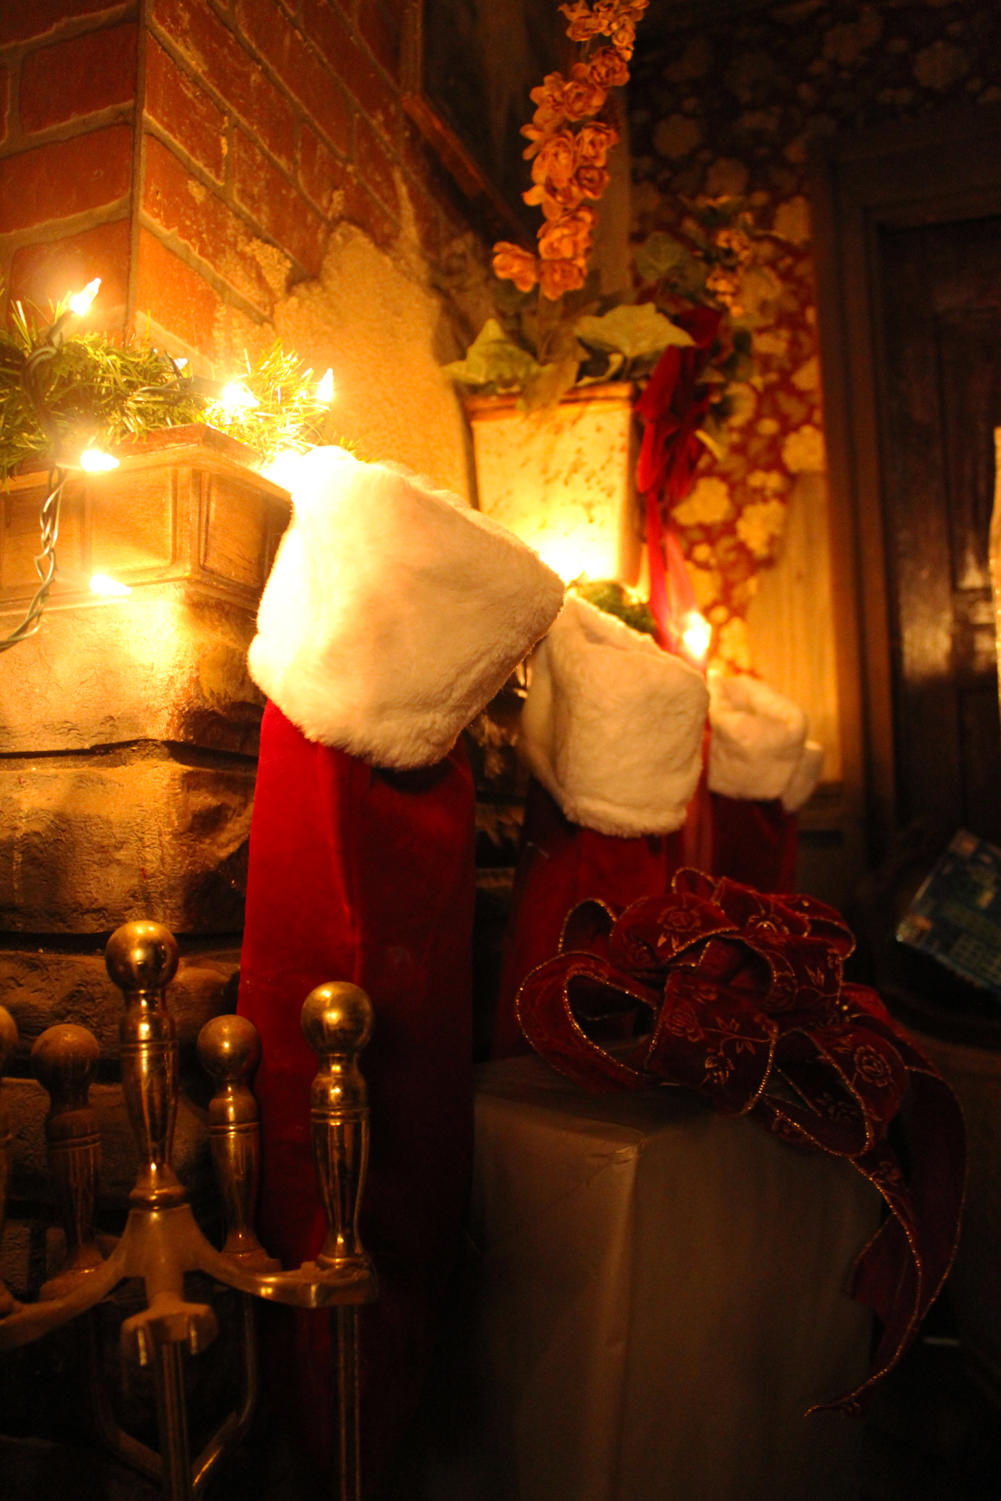 Stockings+hang+by+the+chimney%2C+but+not+with+care%2C+in+the+Krampus+inspired+NOLA+Nightmare.+The+haunted+house+is+decorated+entirely+with+Christmas+lights+and+other+traditional+holiday+decorations.+Photo+credit%3A+Caitlyn+Reisgen